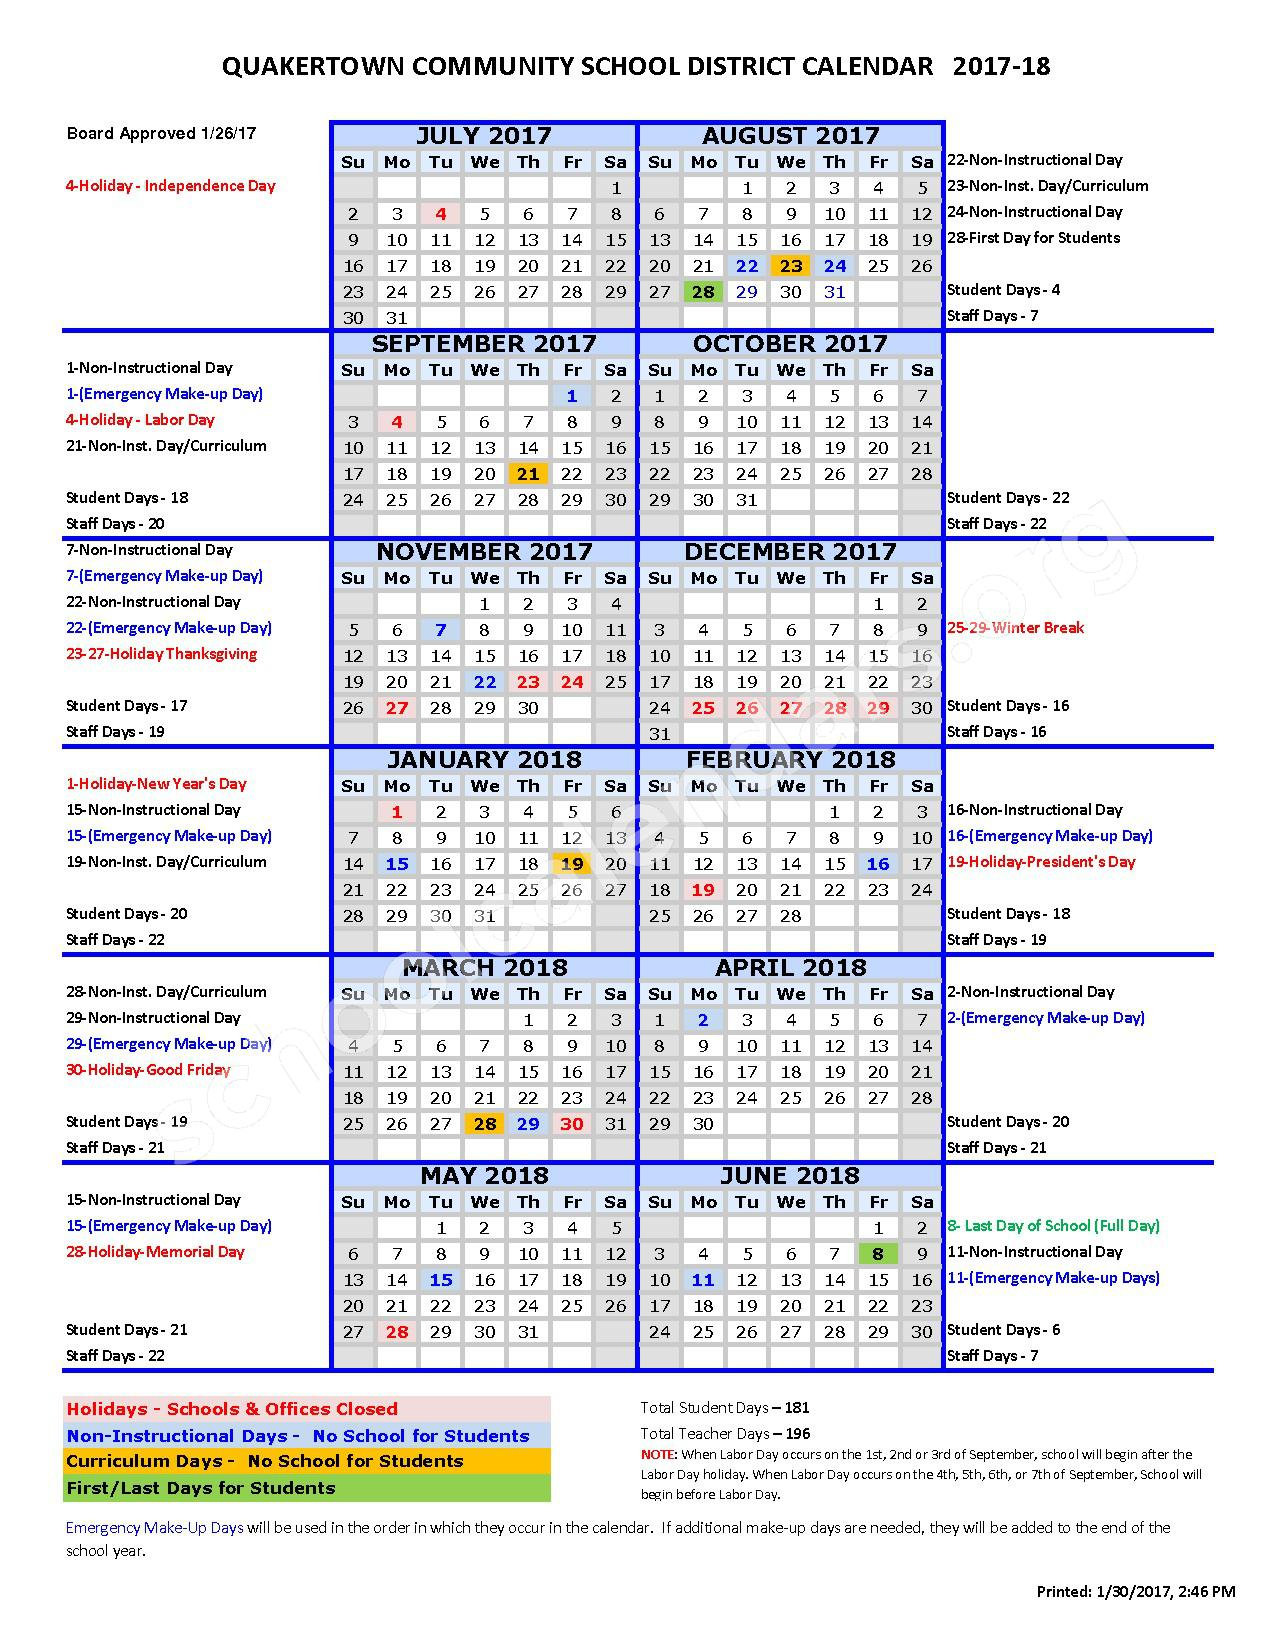 2017 - 2018 School Calendar – Quakertown Community School District – page 1